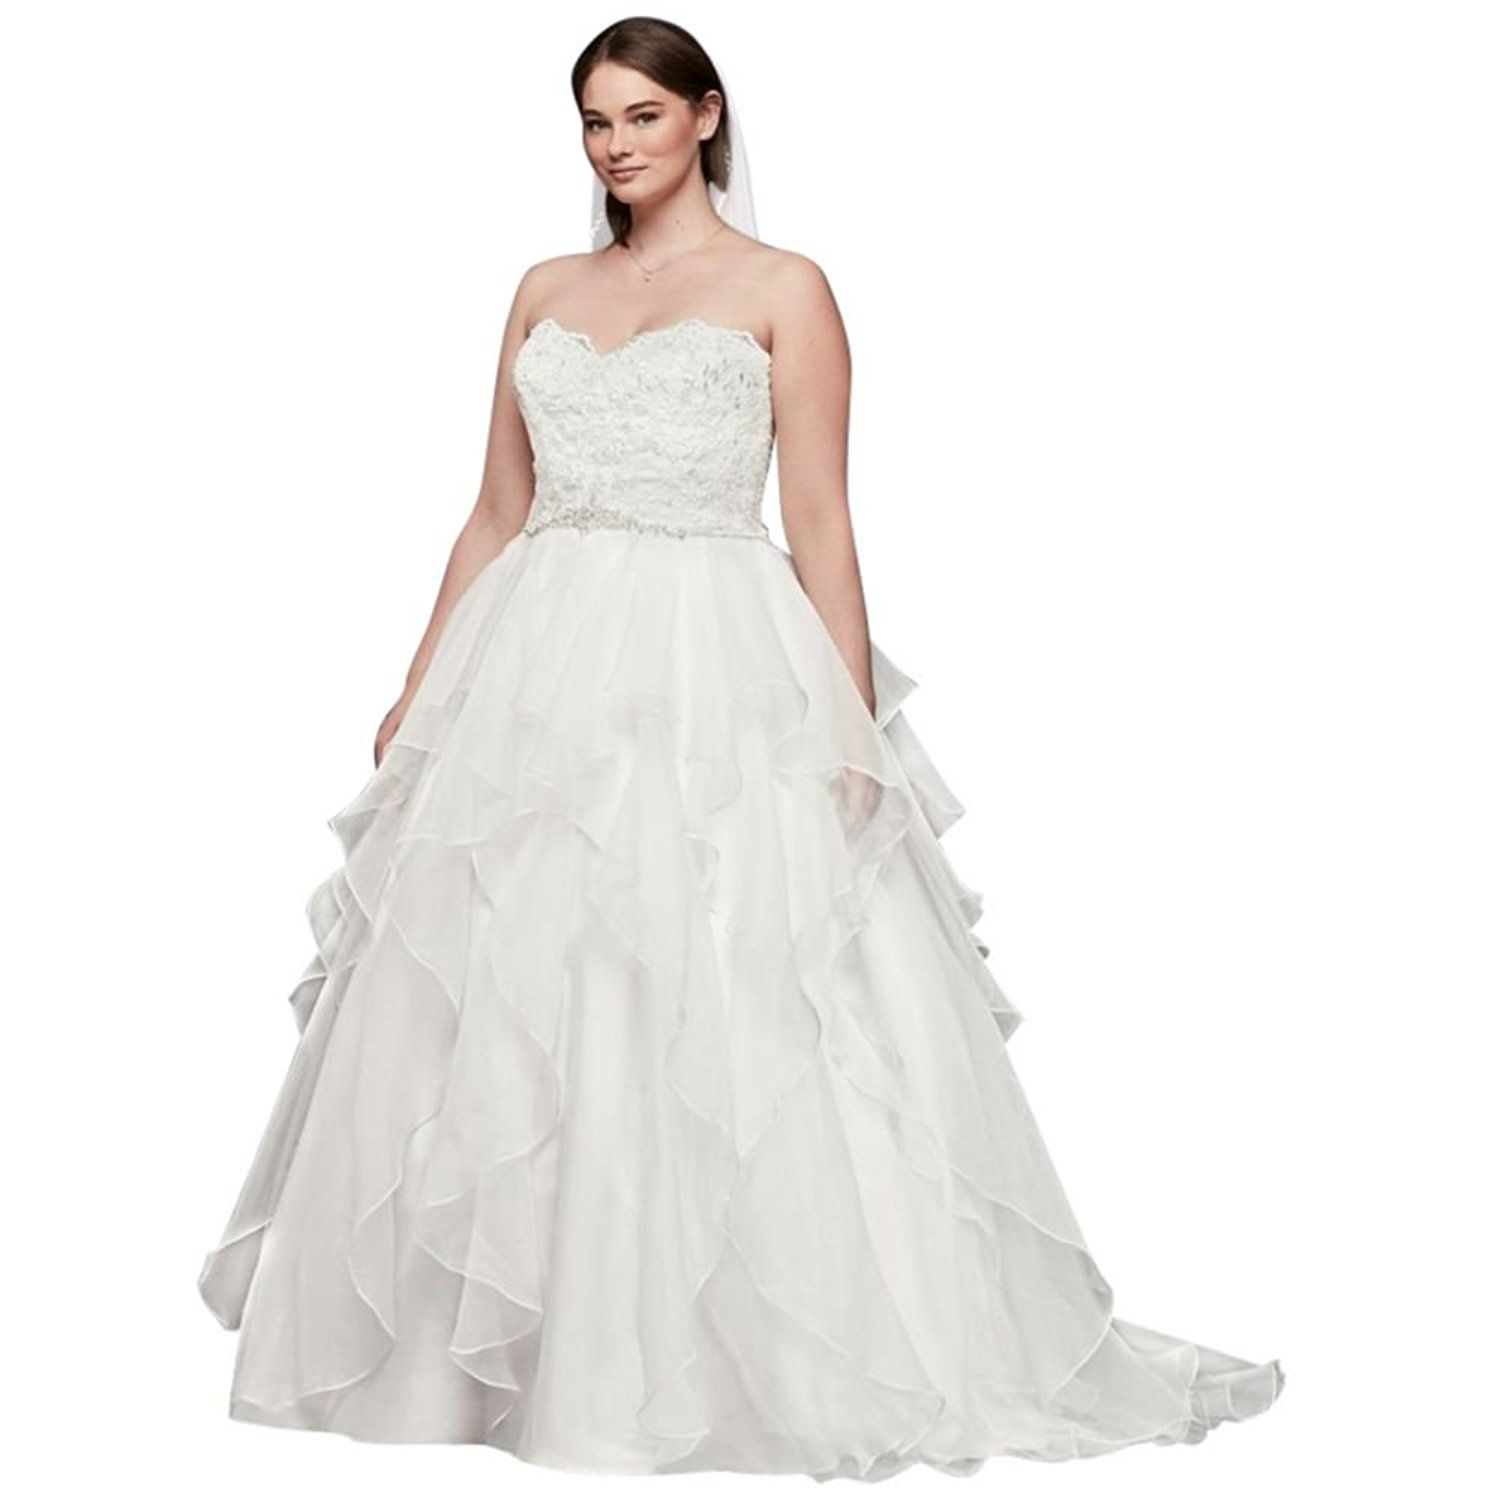 Lace and organza plus size ball gown wedding dress wedding dress